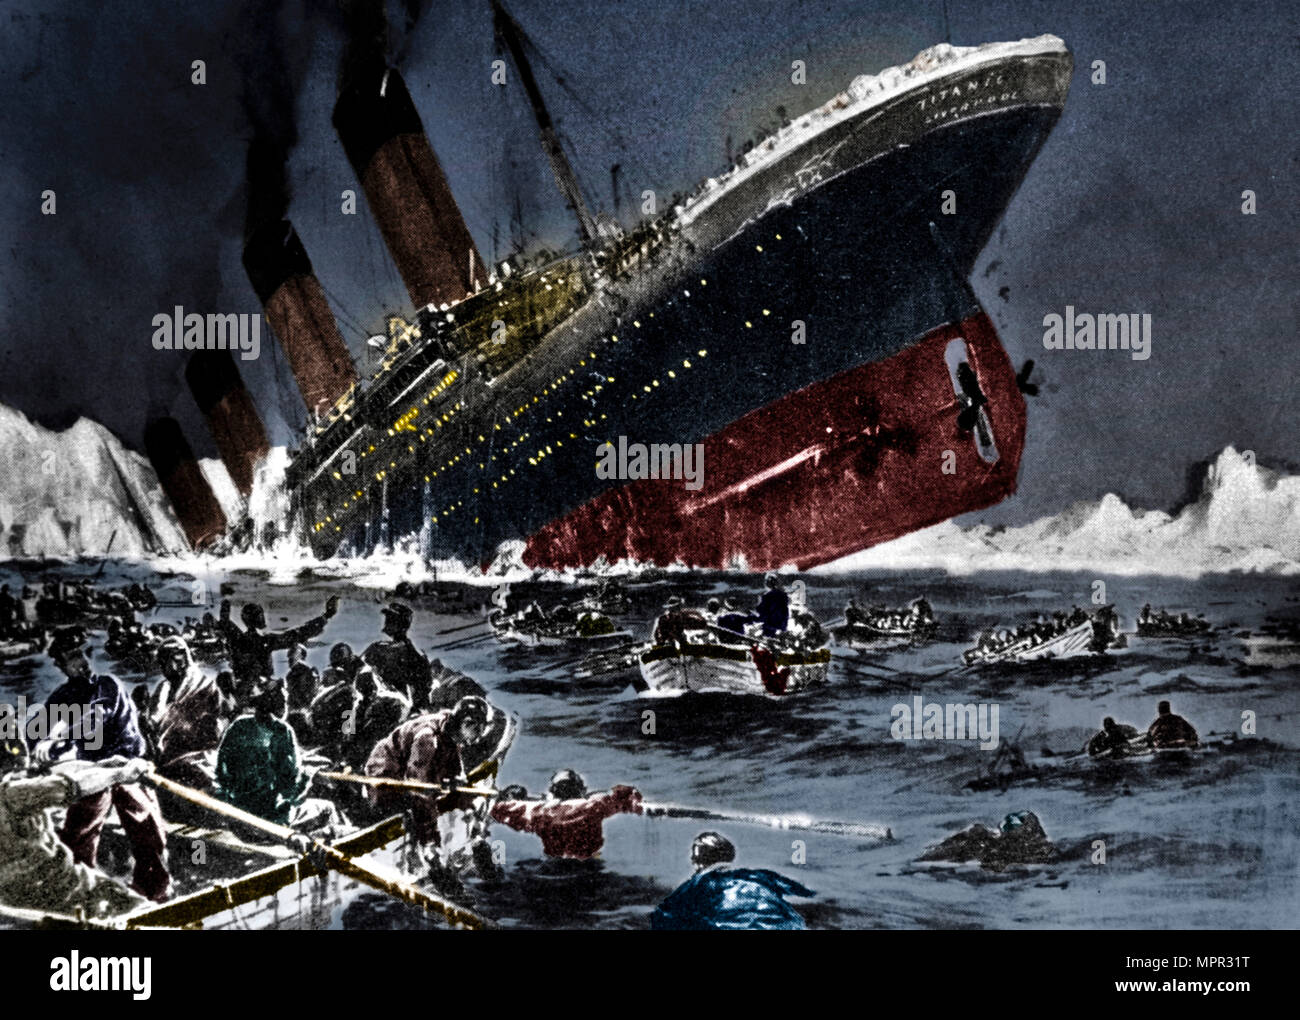 The sinking of SS Titanic, 14 April 1912. Artist: Unknown. - Stock Image